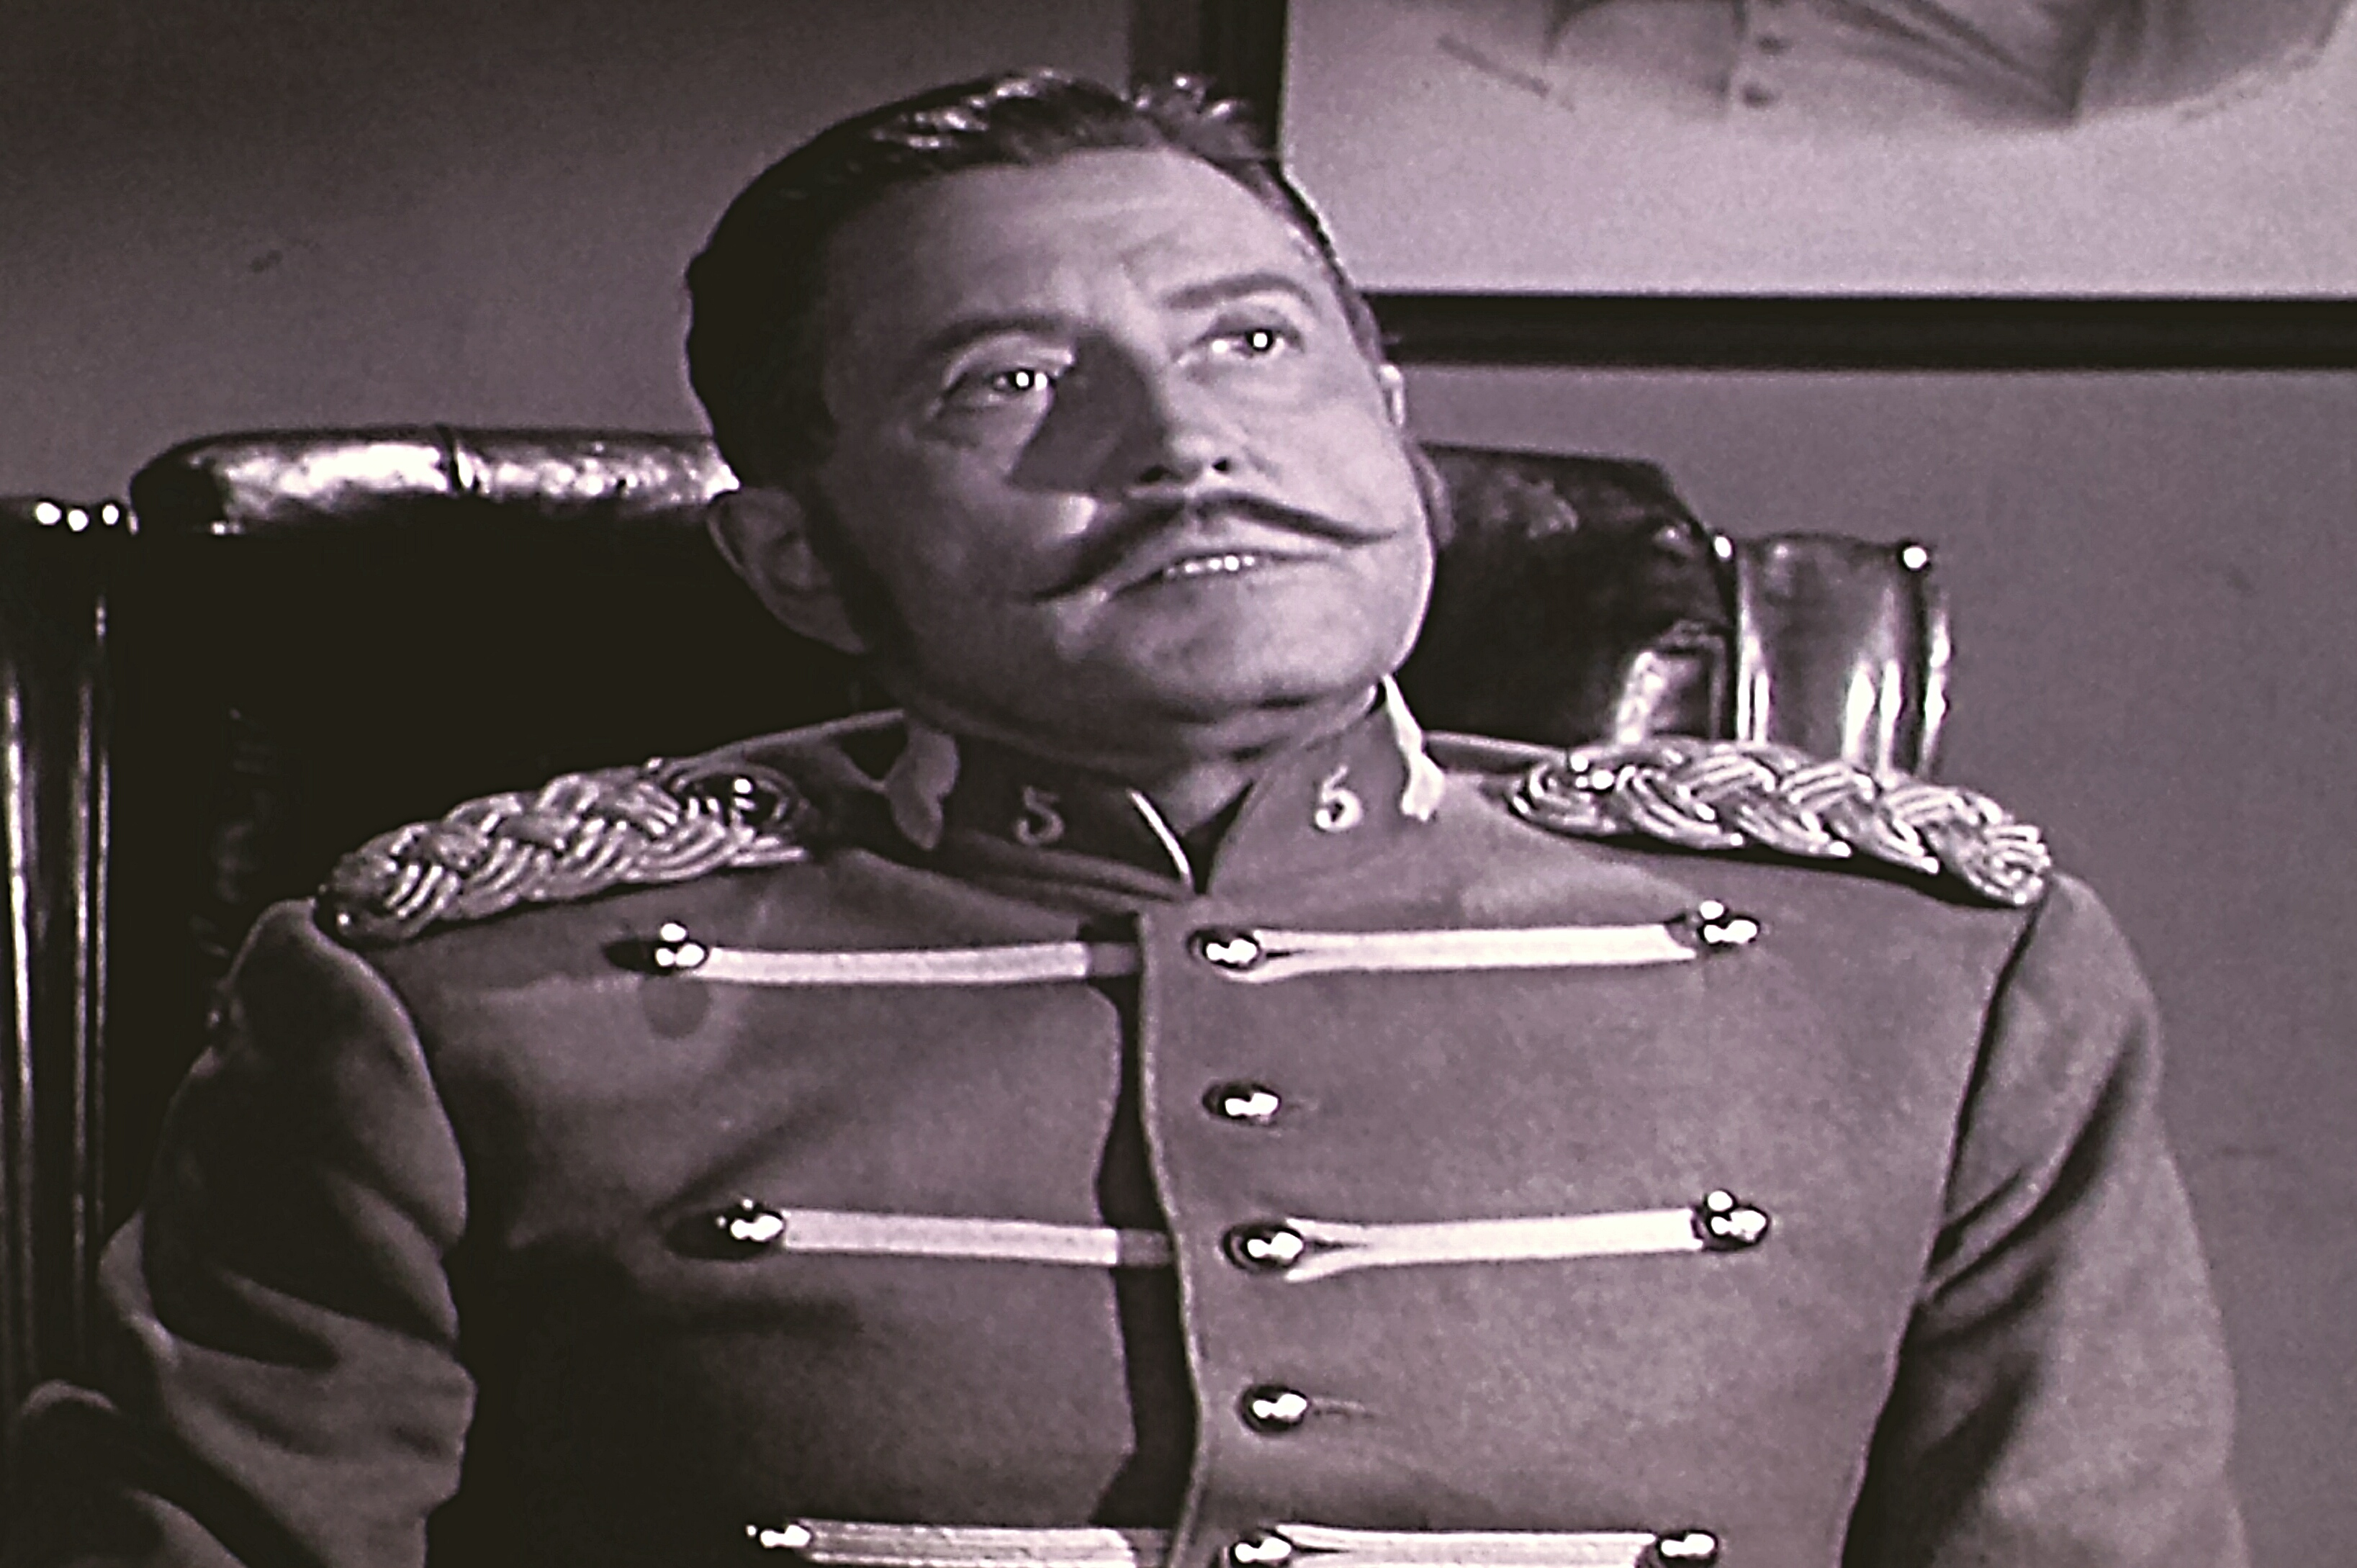 Carl Esmond in Cheyenne (1955)